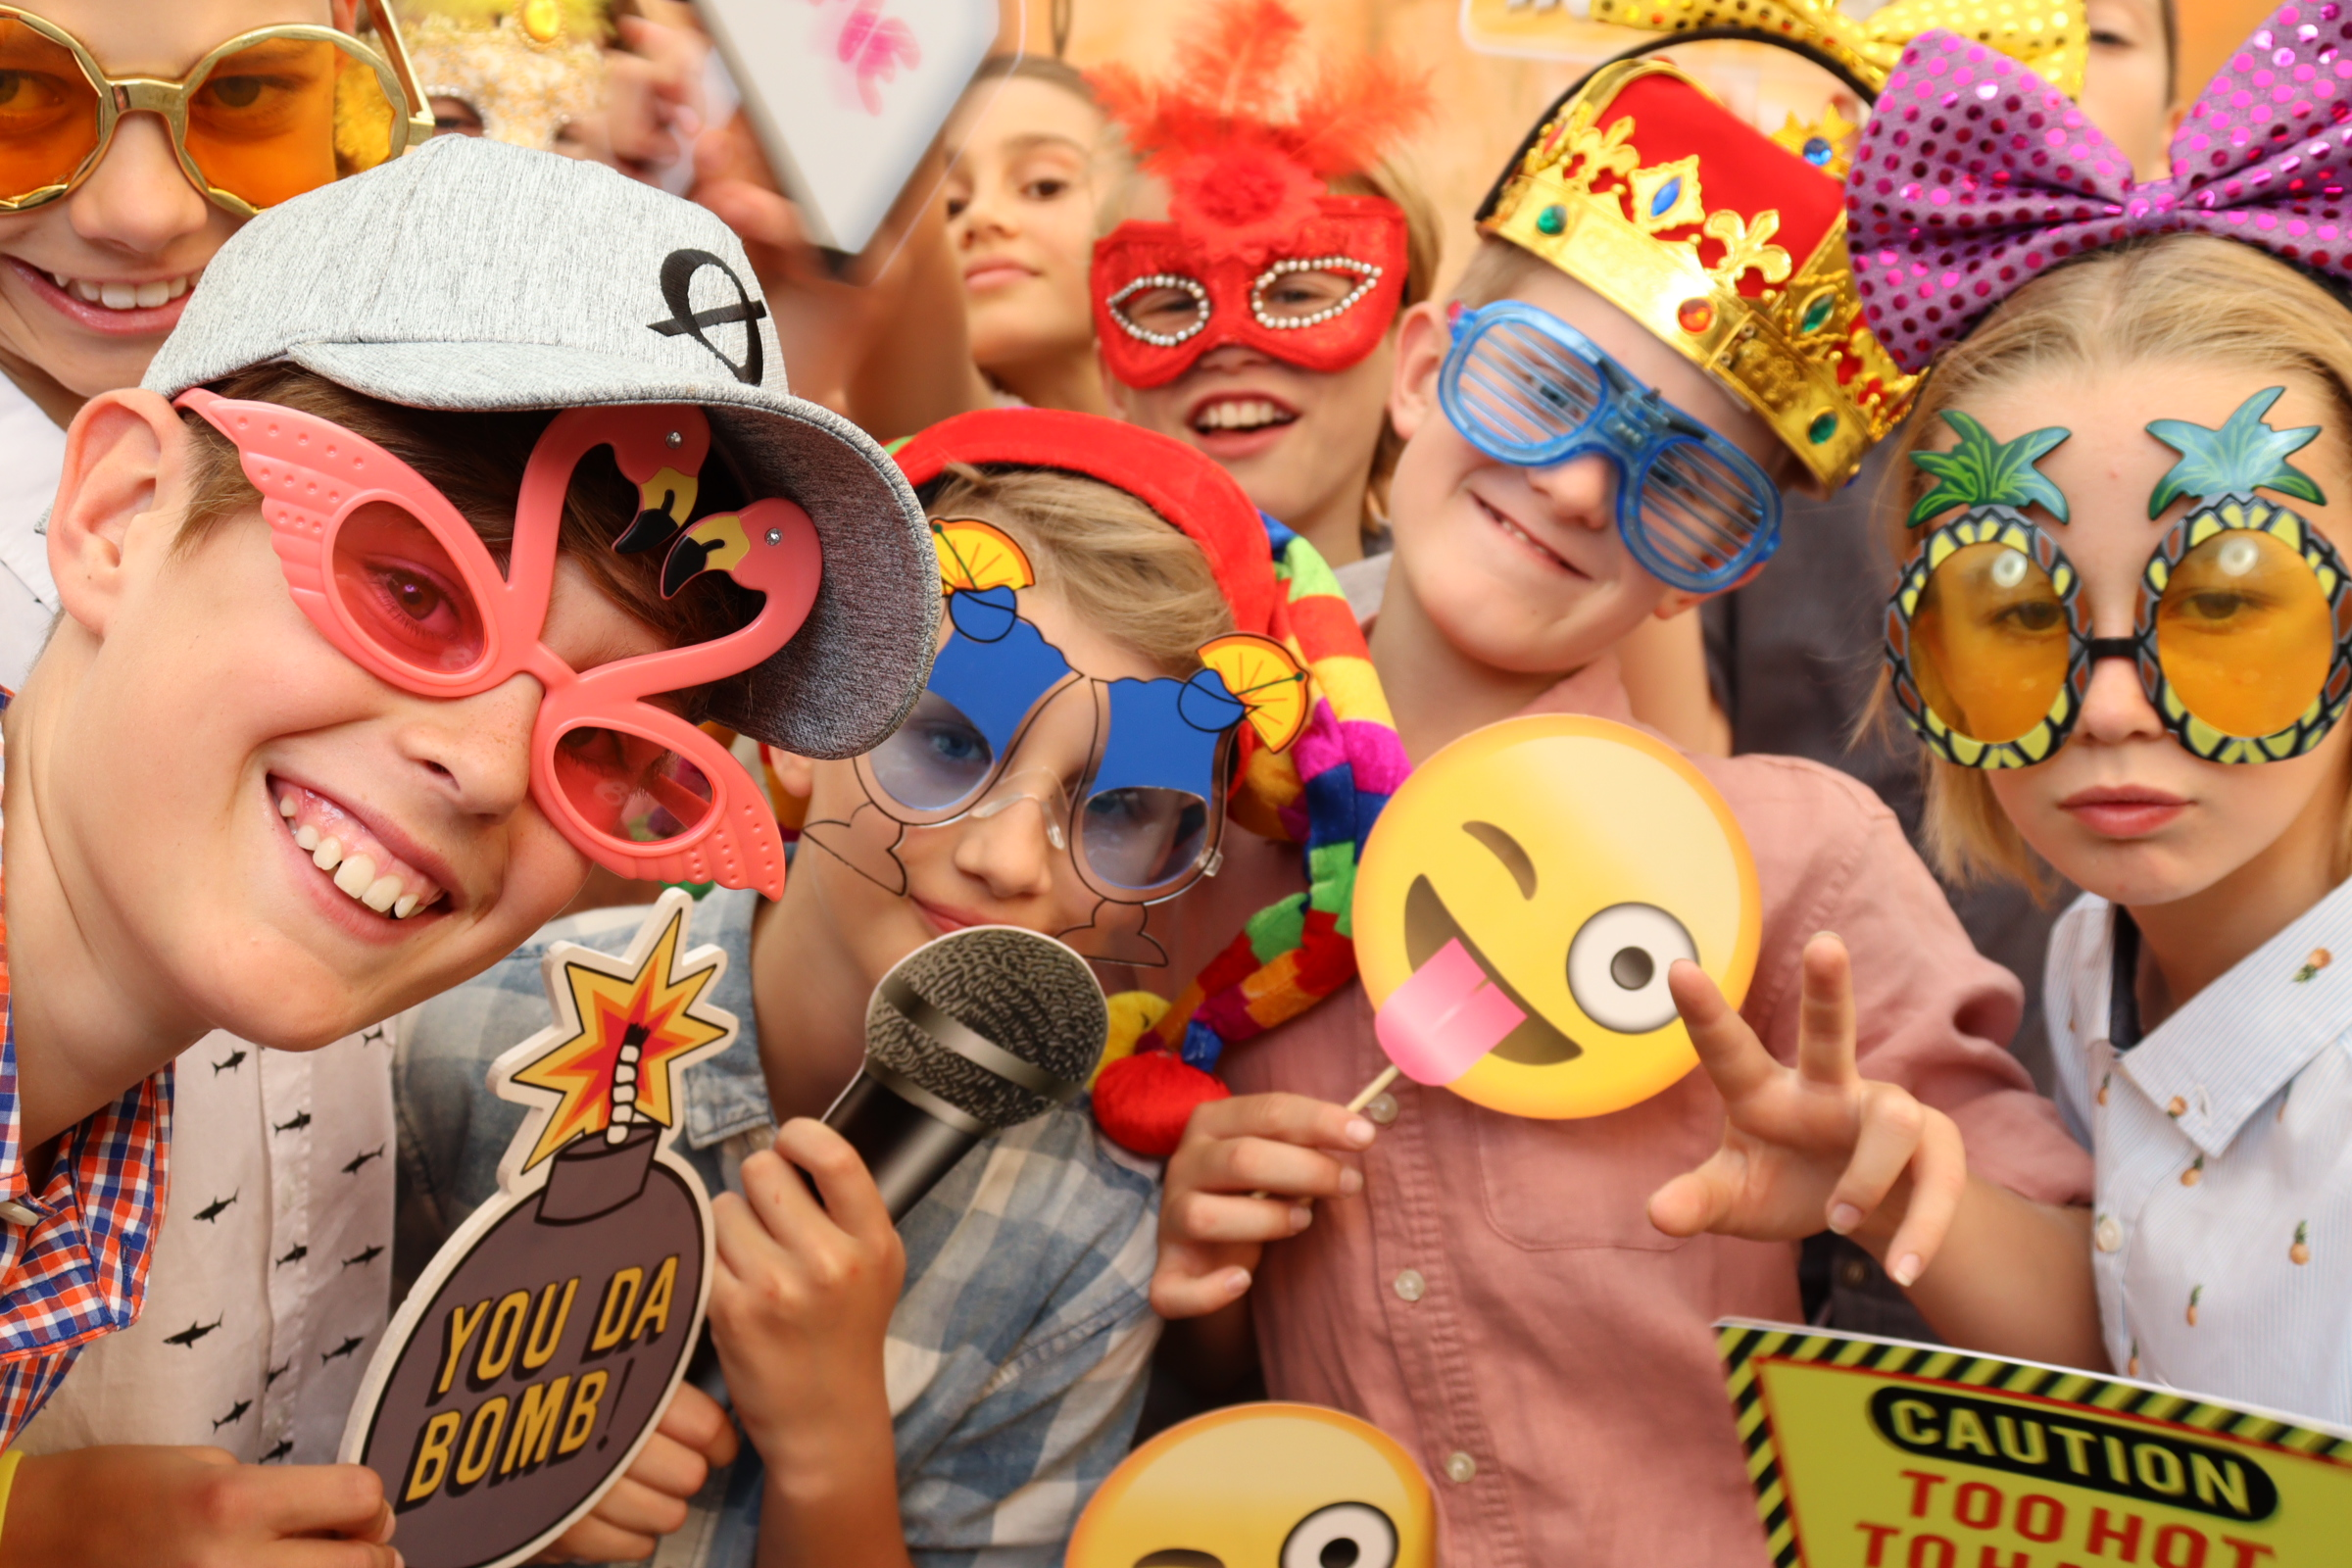 Kids' Party Photo Booth